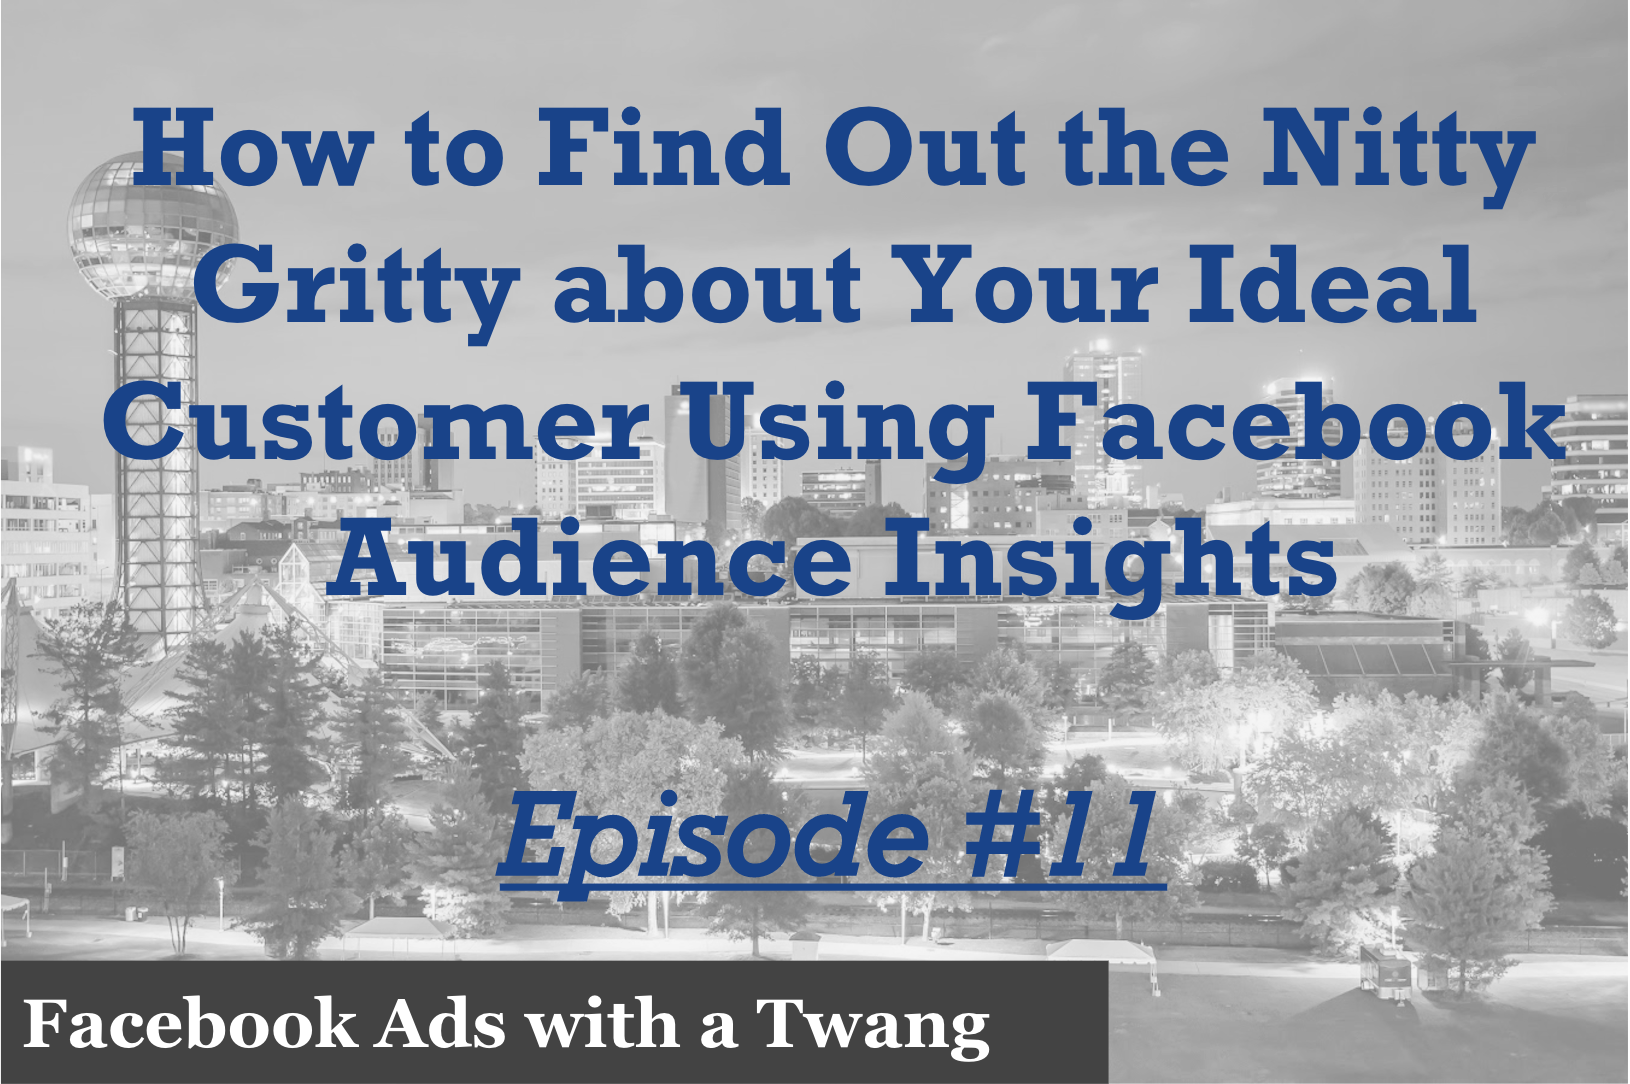 Episode 11 – How to find out the nitty gritty about your ideal customer using Facebook Audience Insights